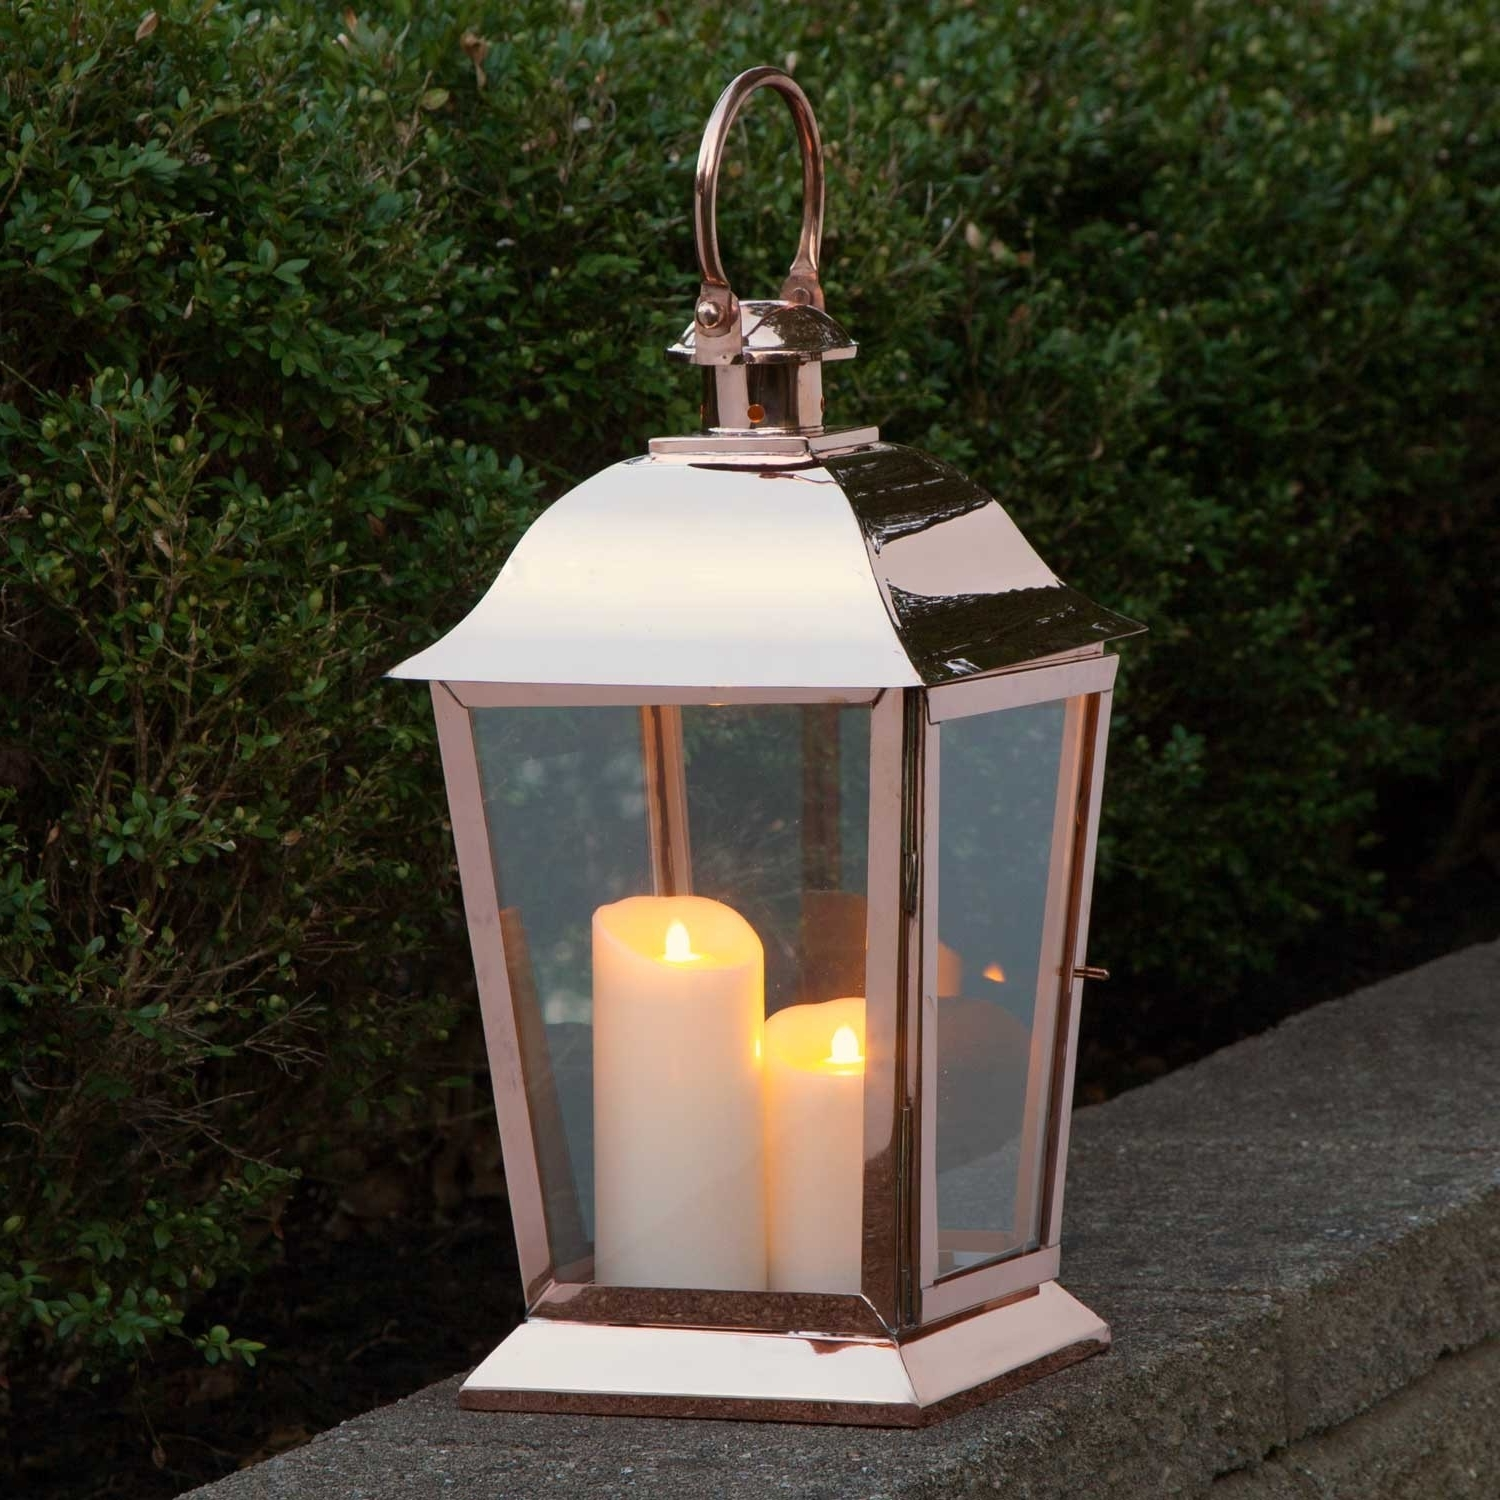 Best And Newest Outdoor Hanging Candle Lanterns Within Garden & Outdoor: Fantastic Candle Lanterns For Outdoor Lighting (View 15 of 20)